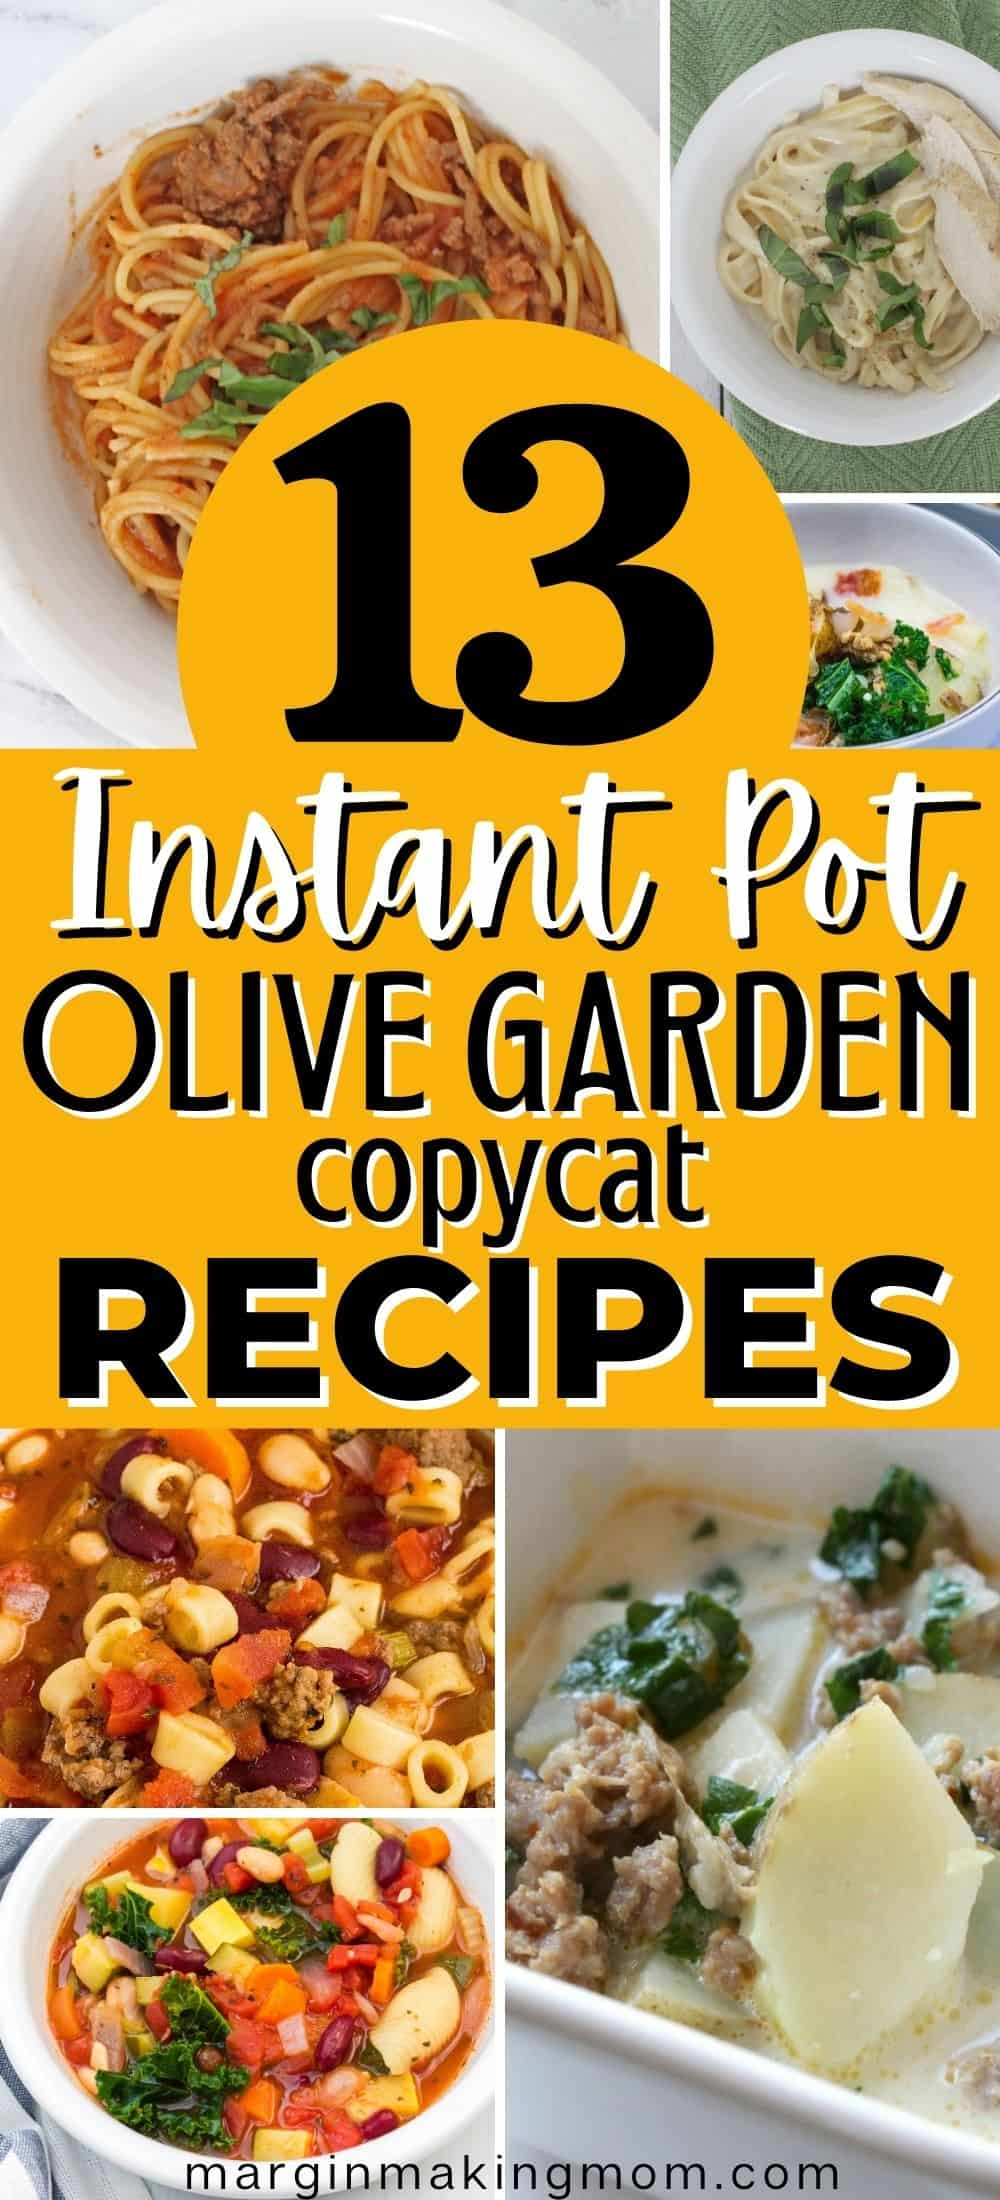 collage image of various Instant Pot olive garden copycat recipes